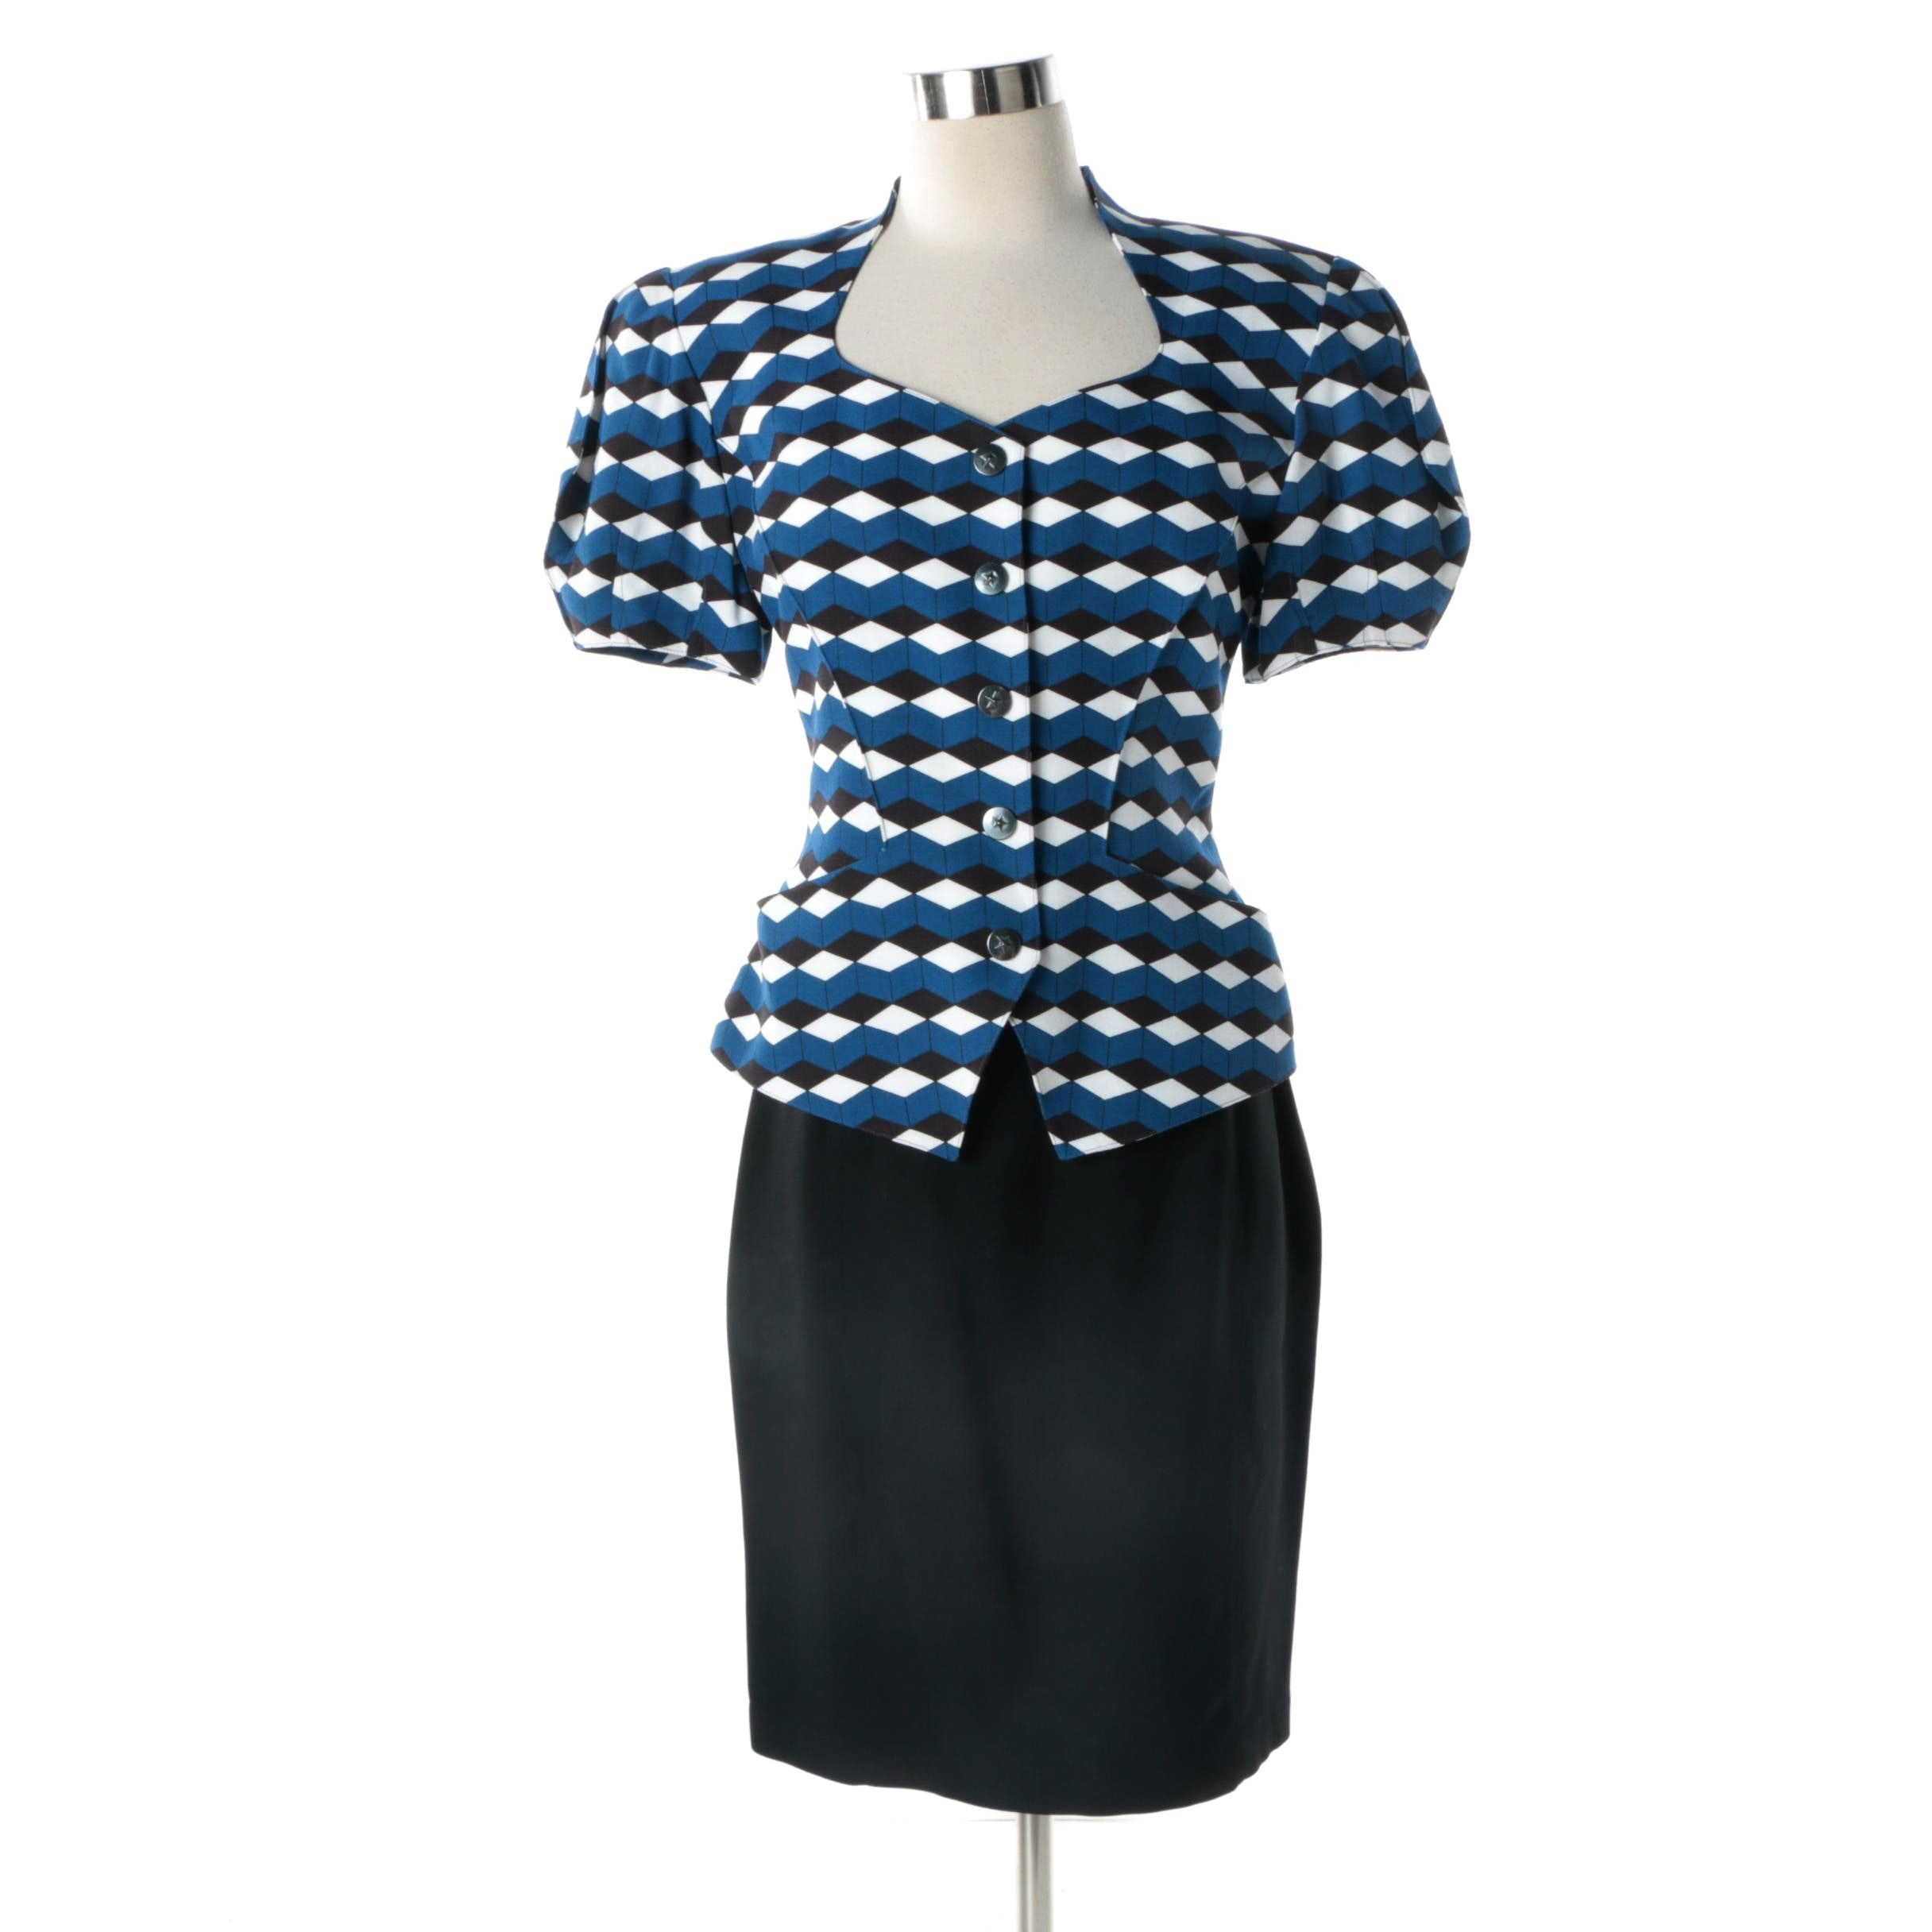 Women's 1980s Vintage Thierry Mugler of Paris Blue, Black and White Skirt Suit